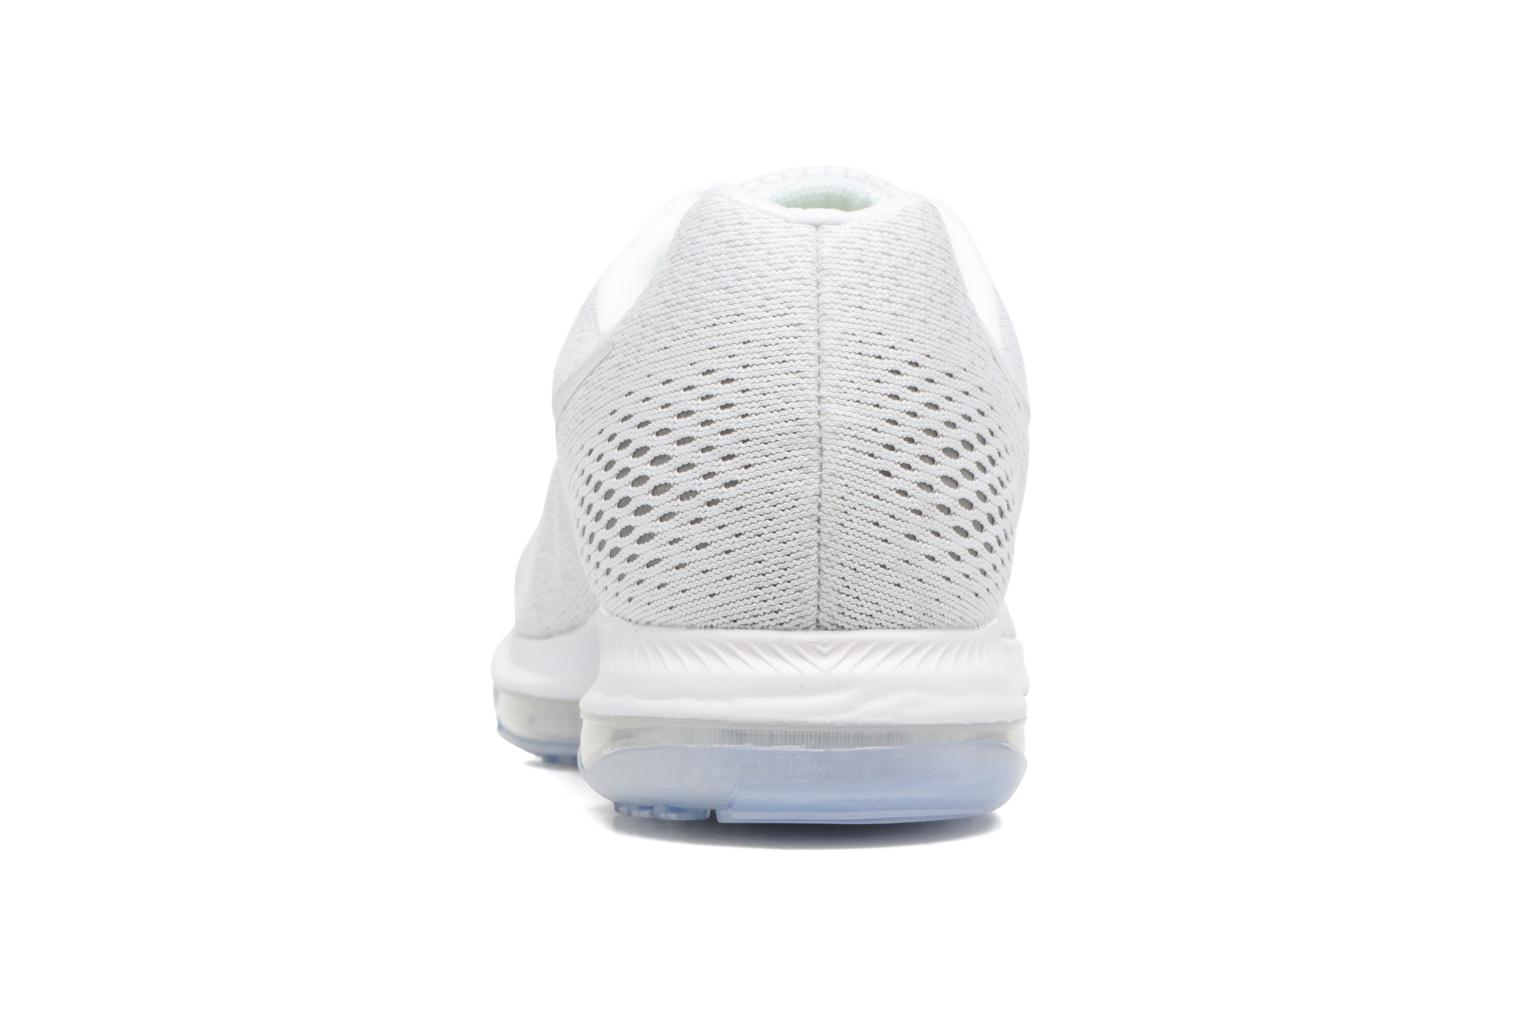 Zapatillas de deporte Nike Nike Zoom All Out Low Blanco vista lateral derecha